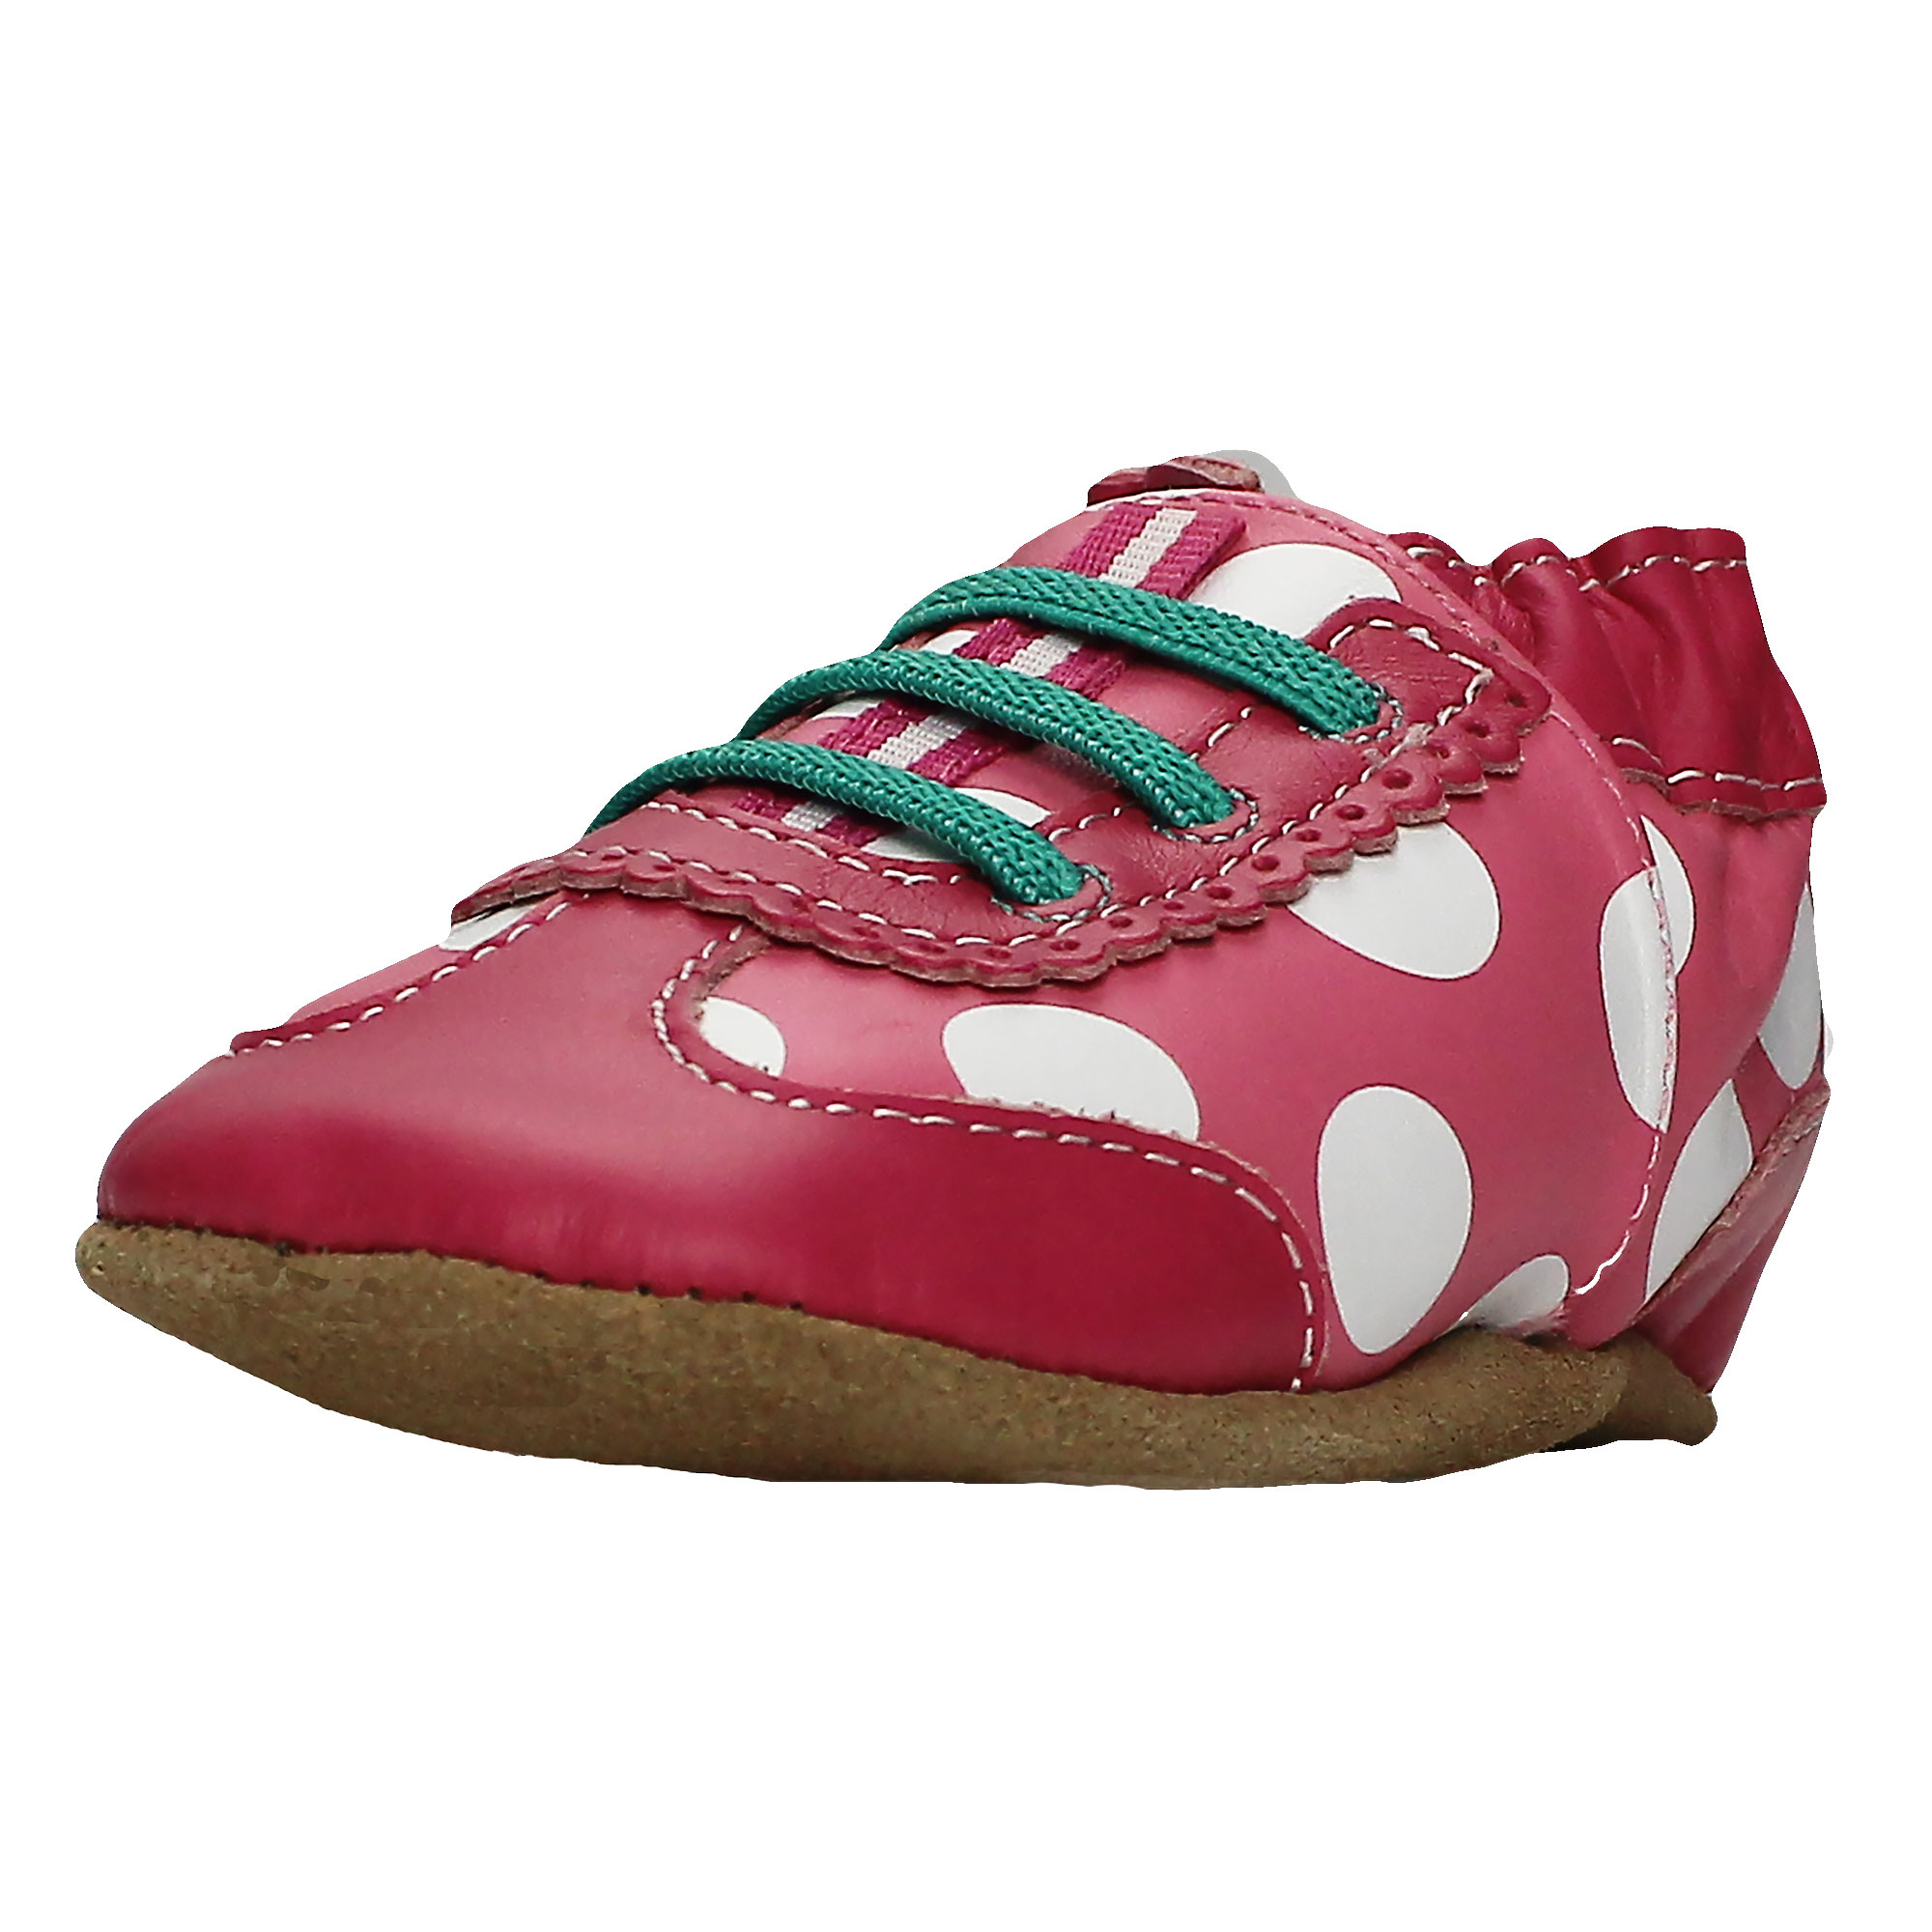 d0d6148ba20b1 Robeez Baby-Girls Hot Pink Sneakers Soft Sole Leather Crib Shoes 18-24 Mths  (Infant Pre-Walker Baby Shoes) - First Walking Dotted Dolly Prewalker Suede  ...